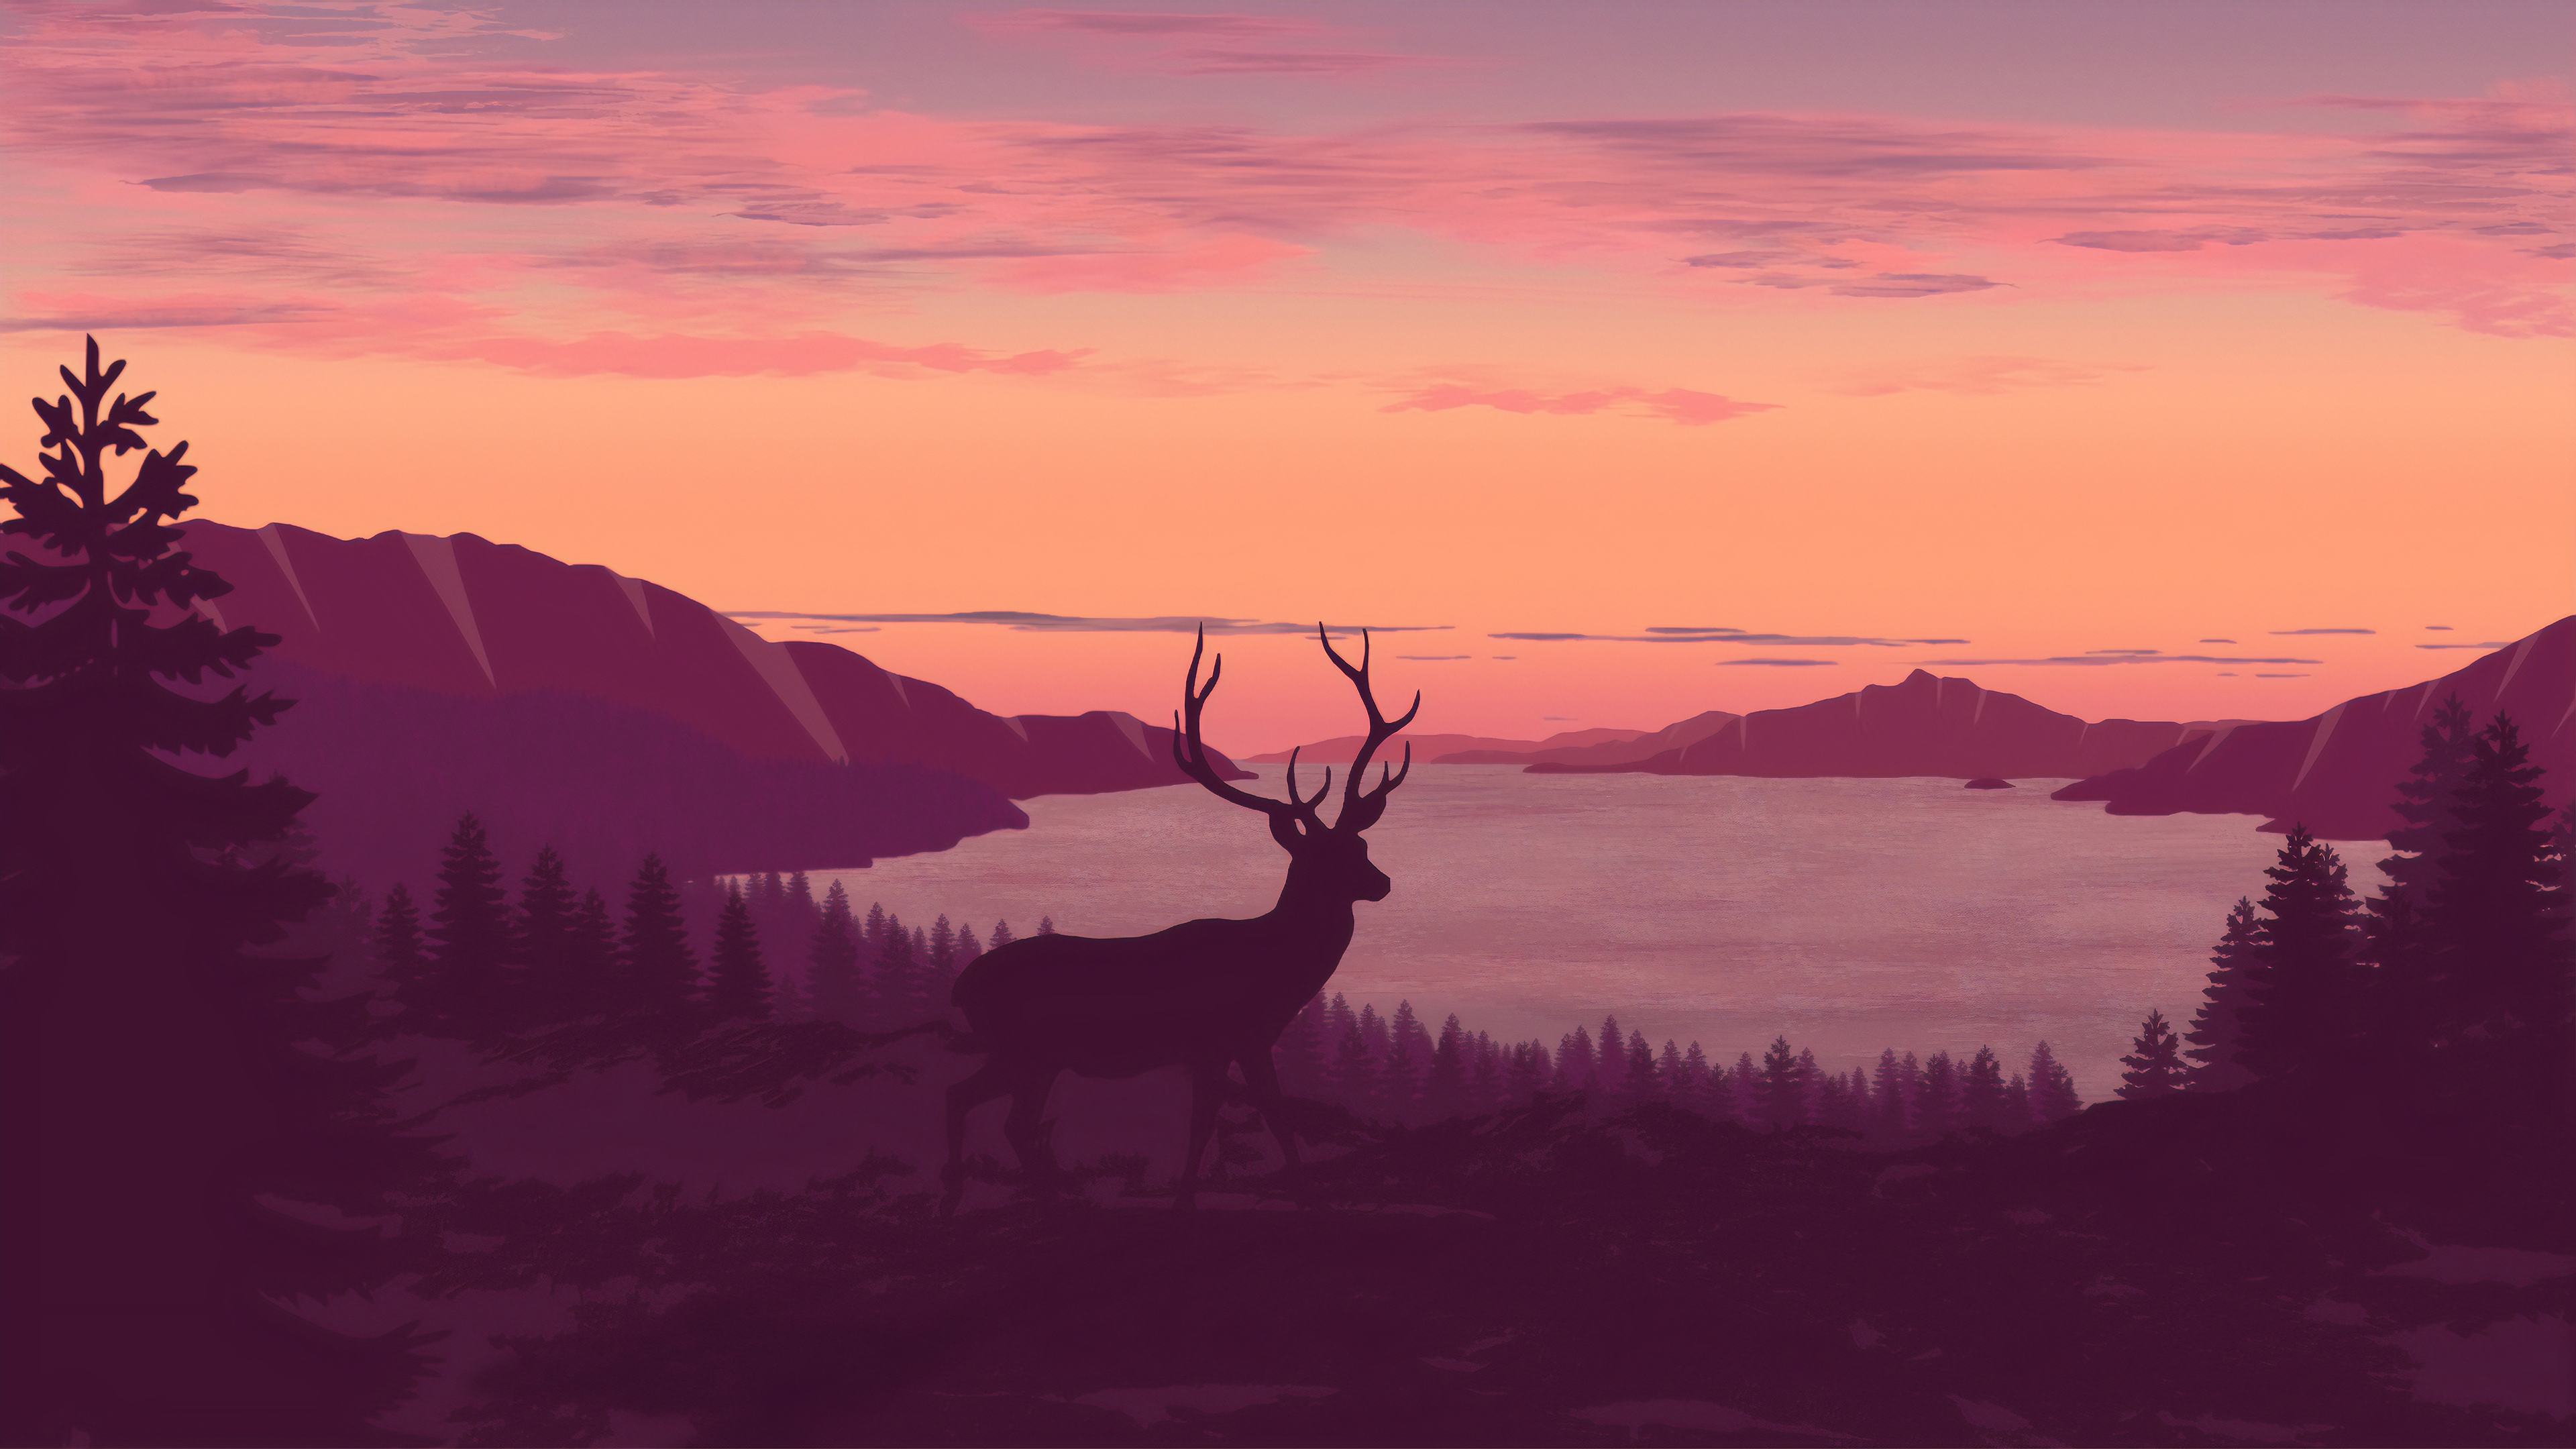 reindeer minimalist call of sunset 1563222130 - Reindeer Minimalist Call Of Sunset - reindeer wallpapers, minimalist wallpapers, minimalism wallpapers, hd-wallpapers, digital art wallpapers, deviantart wallpapers, artwork wallpapers, artist wallpapers, 4k-wallpapers